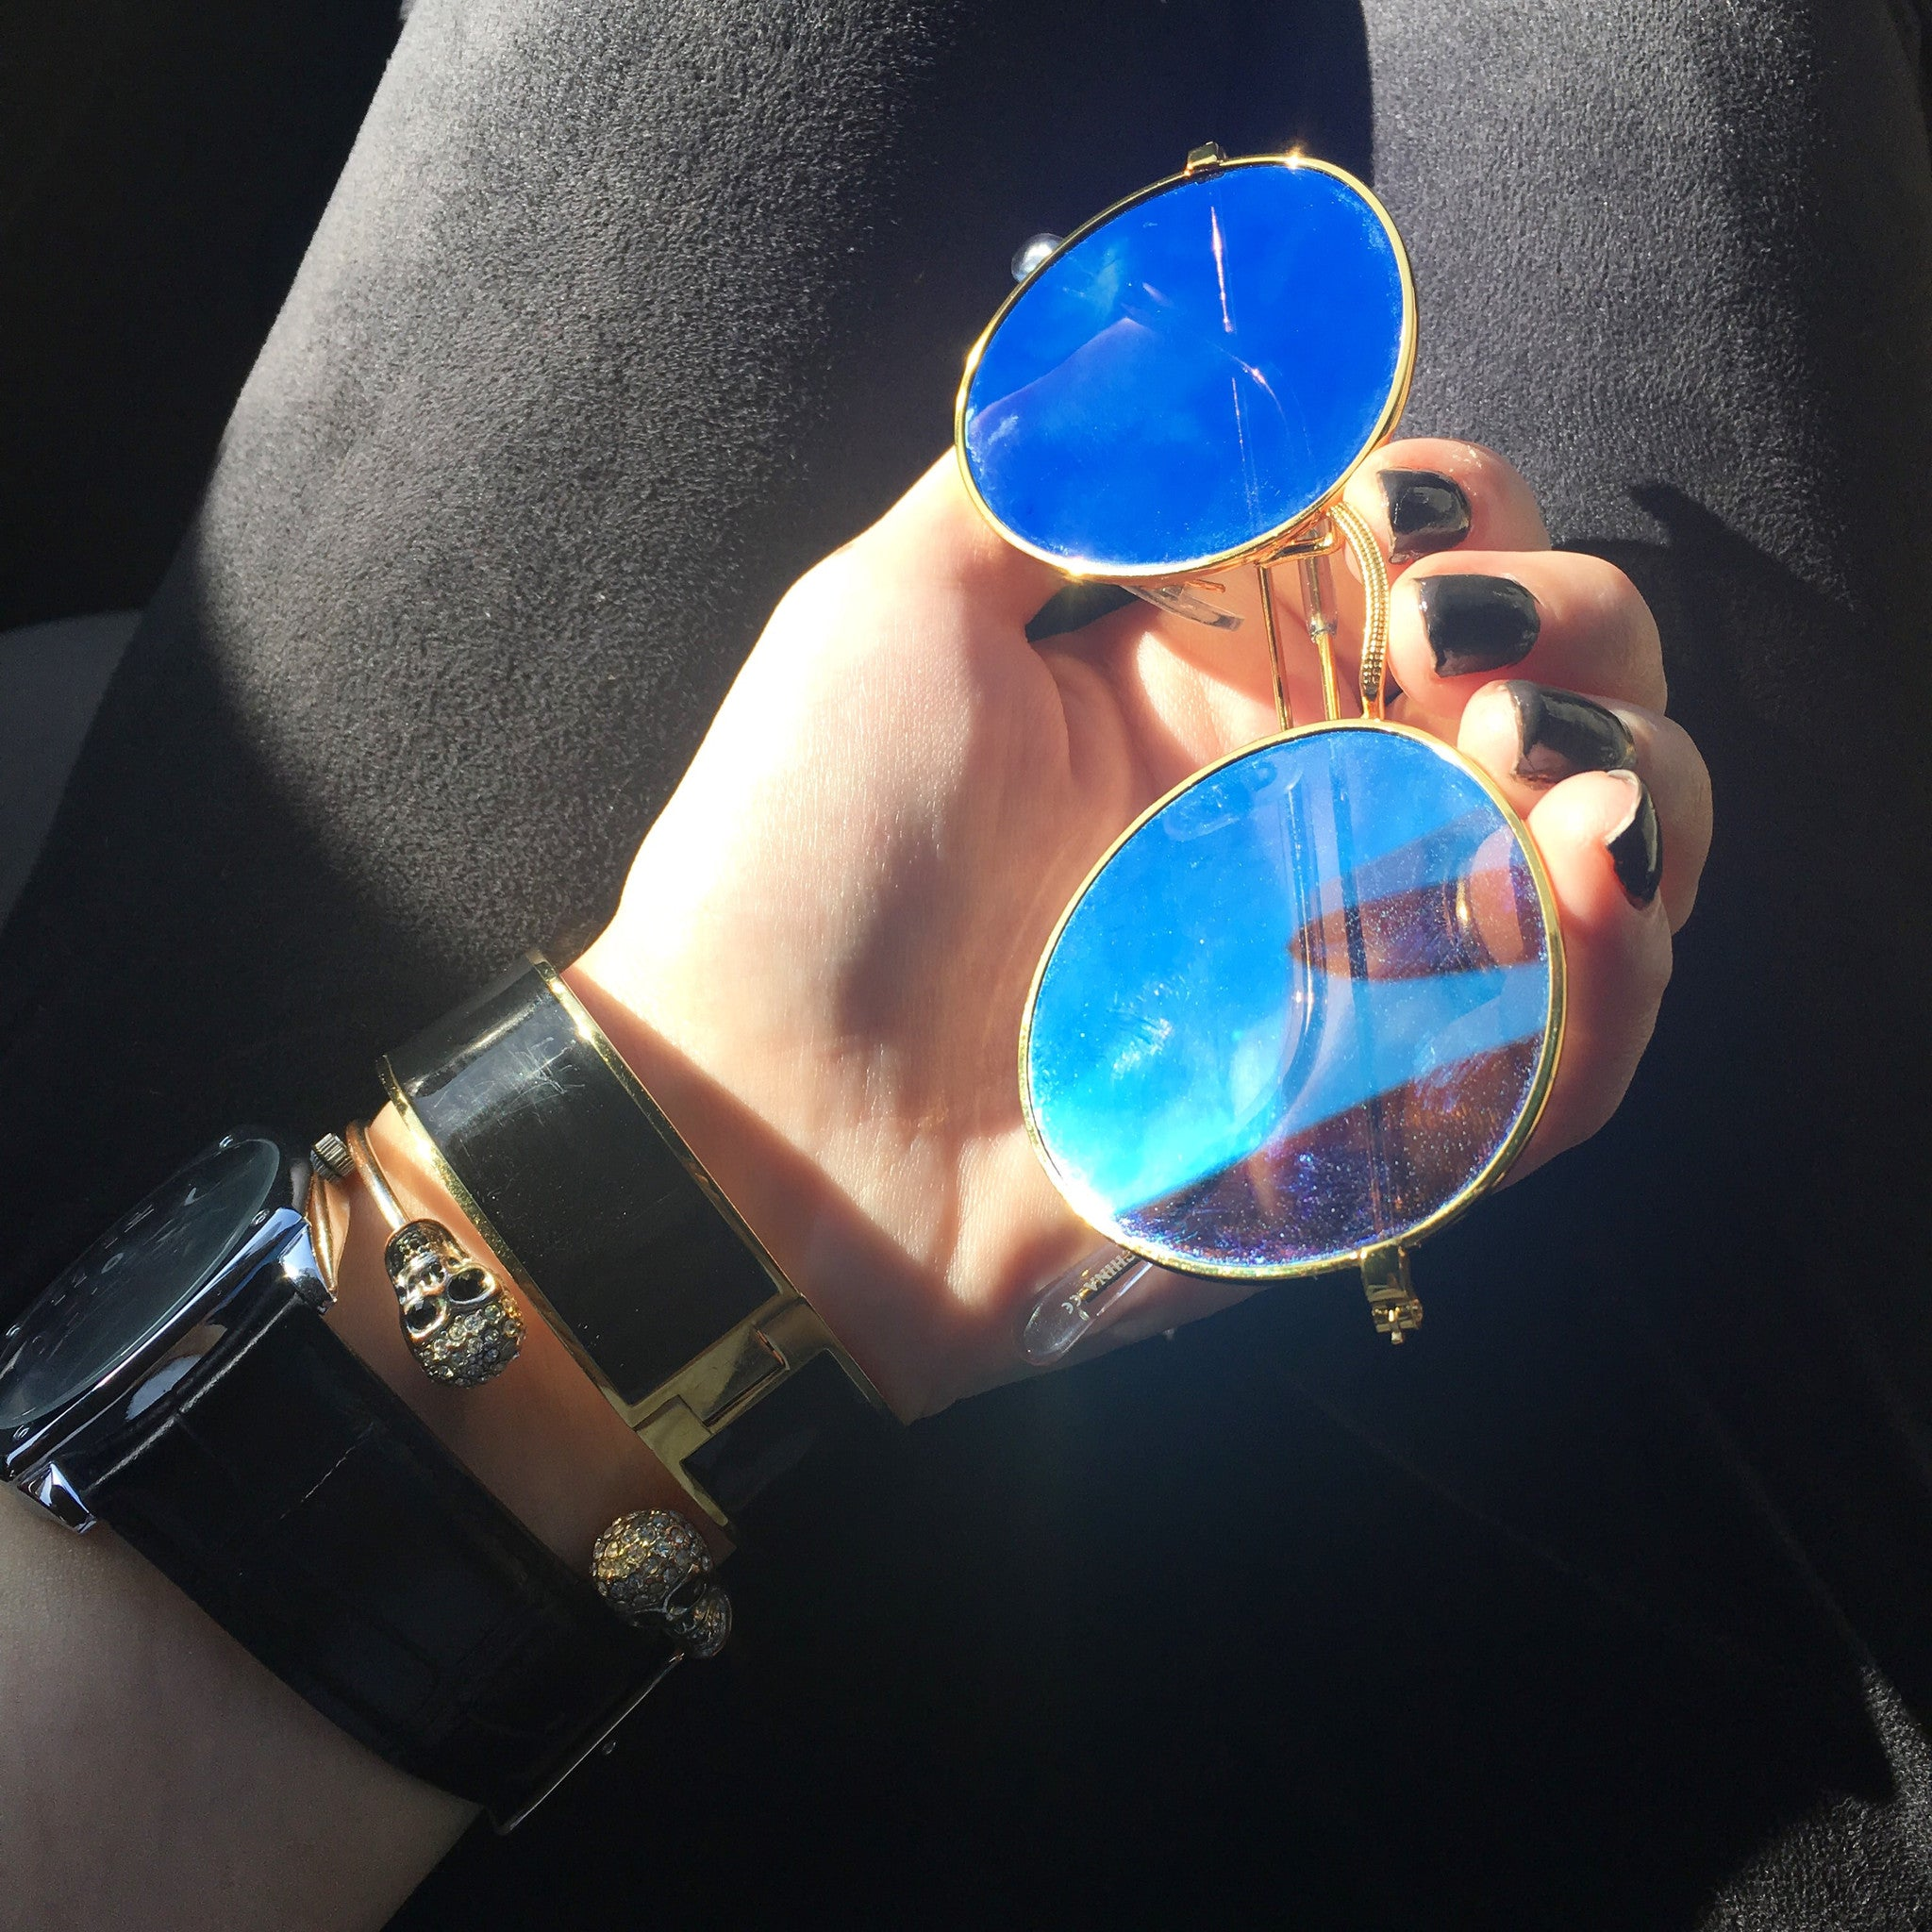 Round Metallic Mirror Sunglasses -All metal